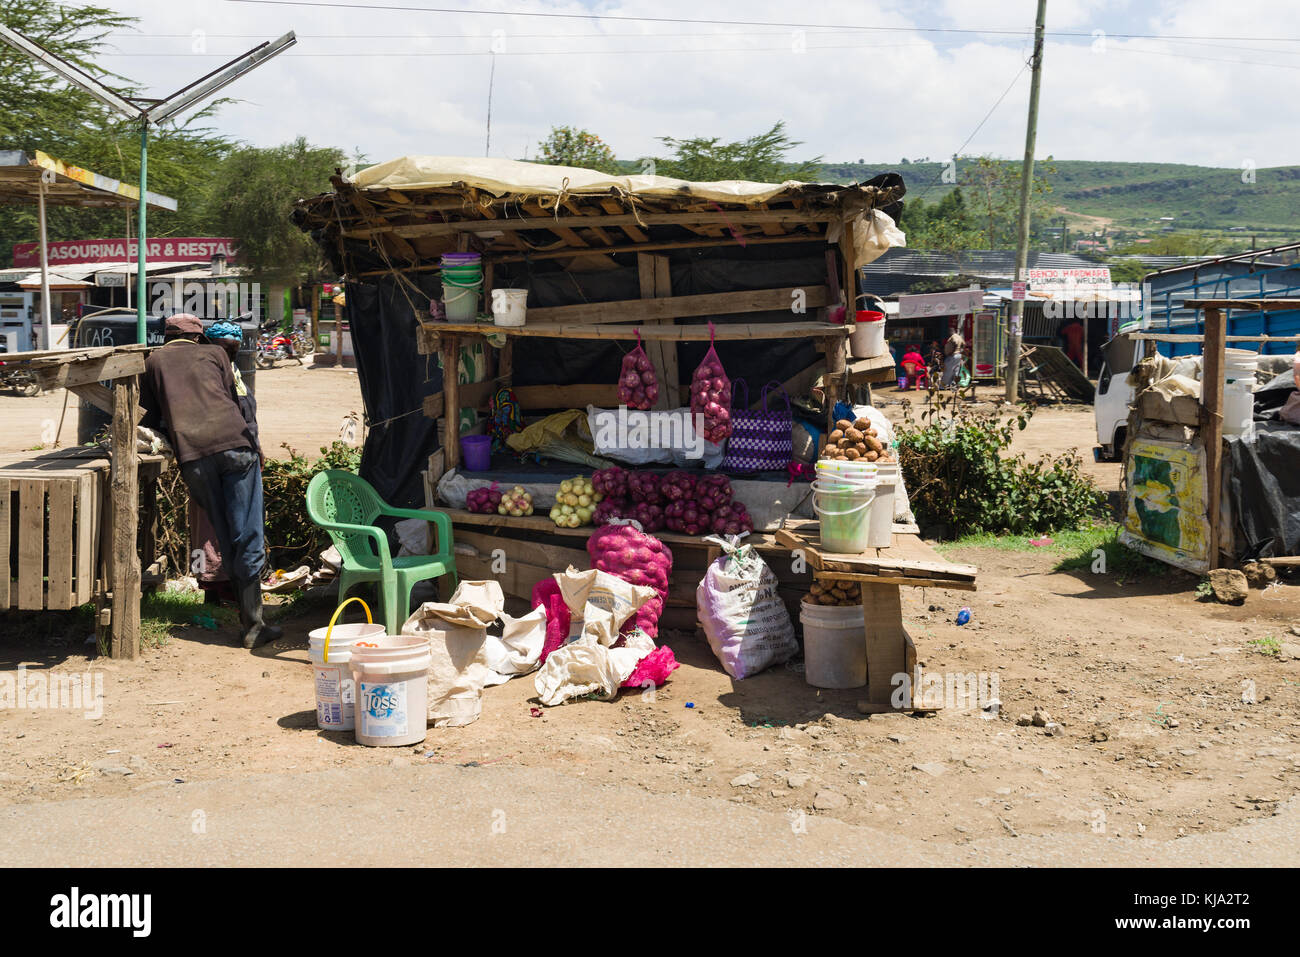 An African stands by his stall with fruit and vegetables on sale by